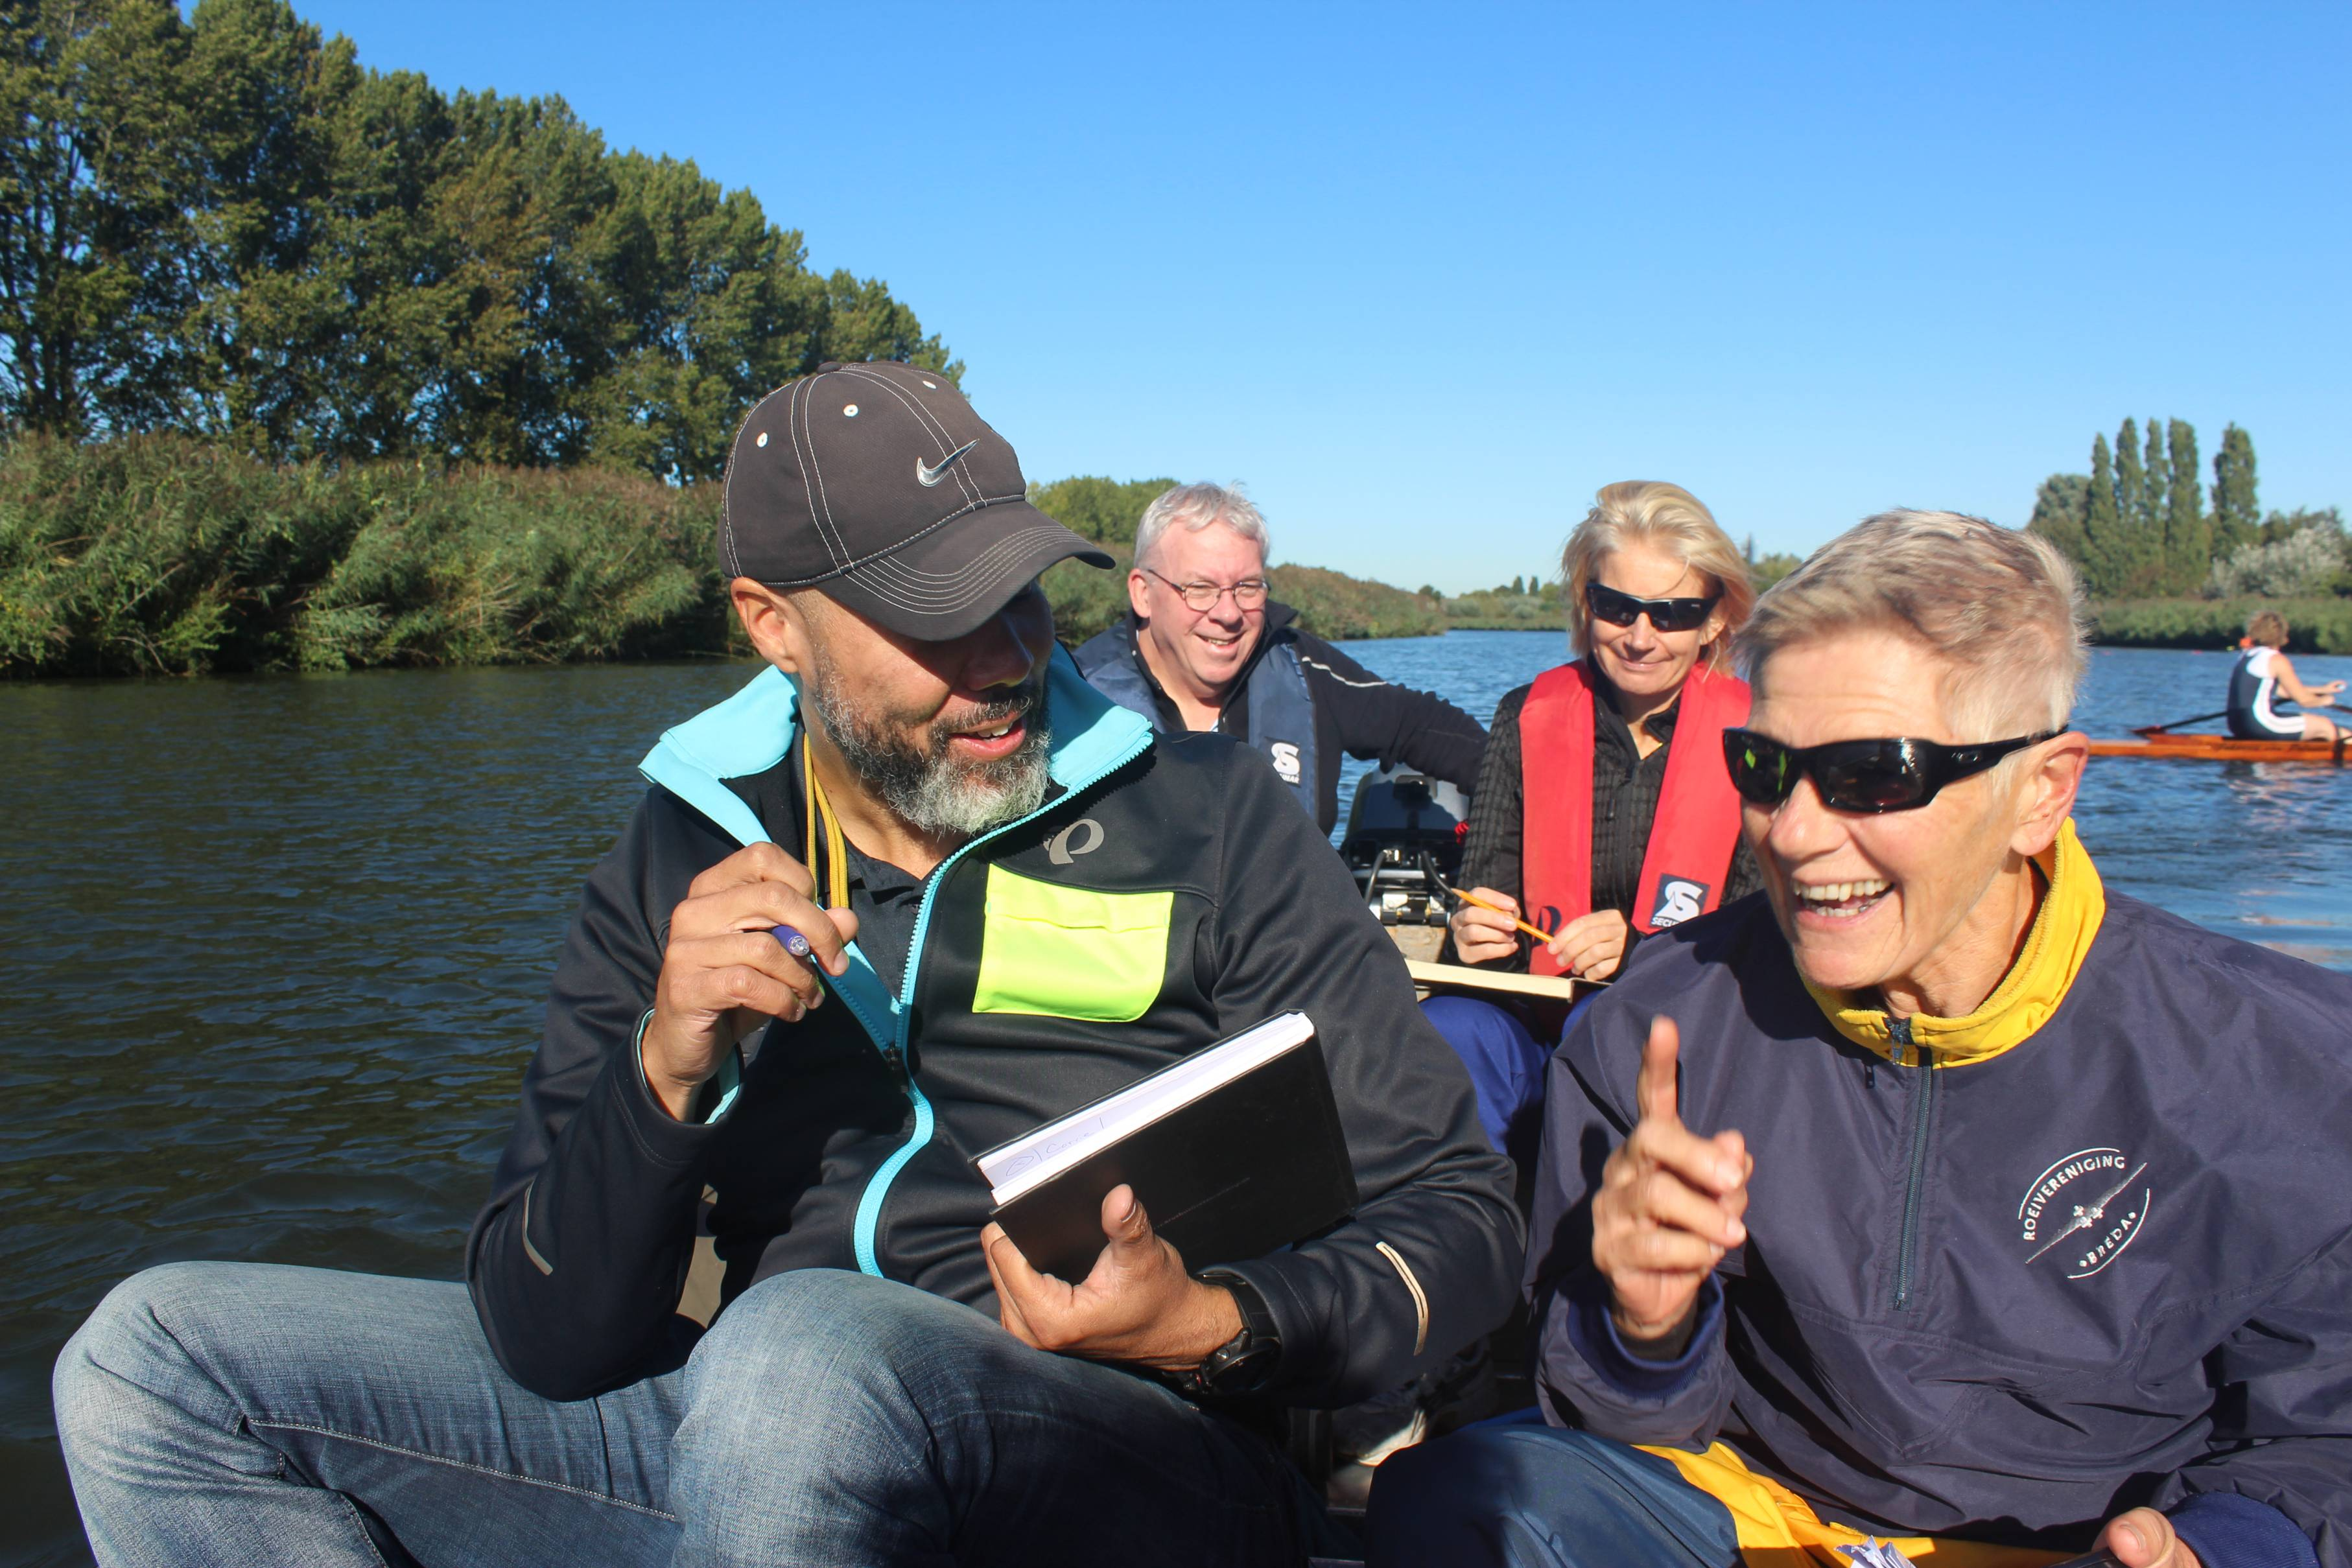 RV Breda hired professional coach Brock Sampson from RoBox to teach a series of on-water clinics